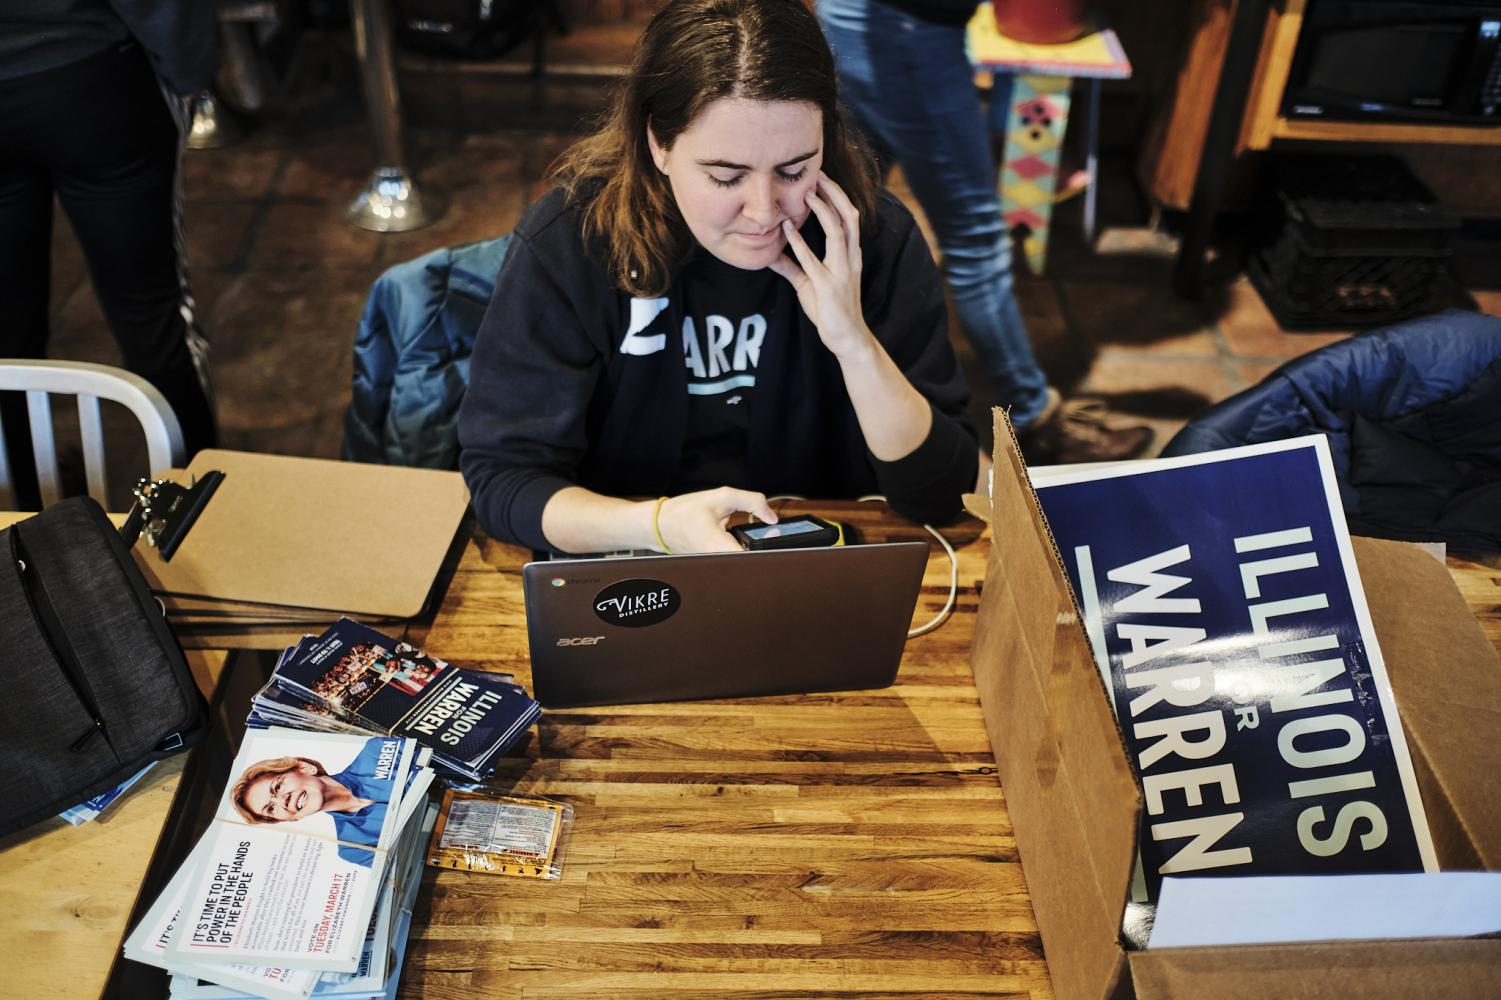 Tori Hill, an organizer for the Warren Campaign, prepares canvassing materials at Caffe Paradiso on Sunday afternoon.